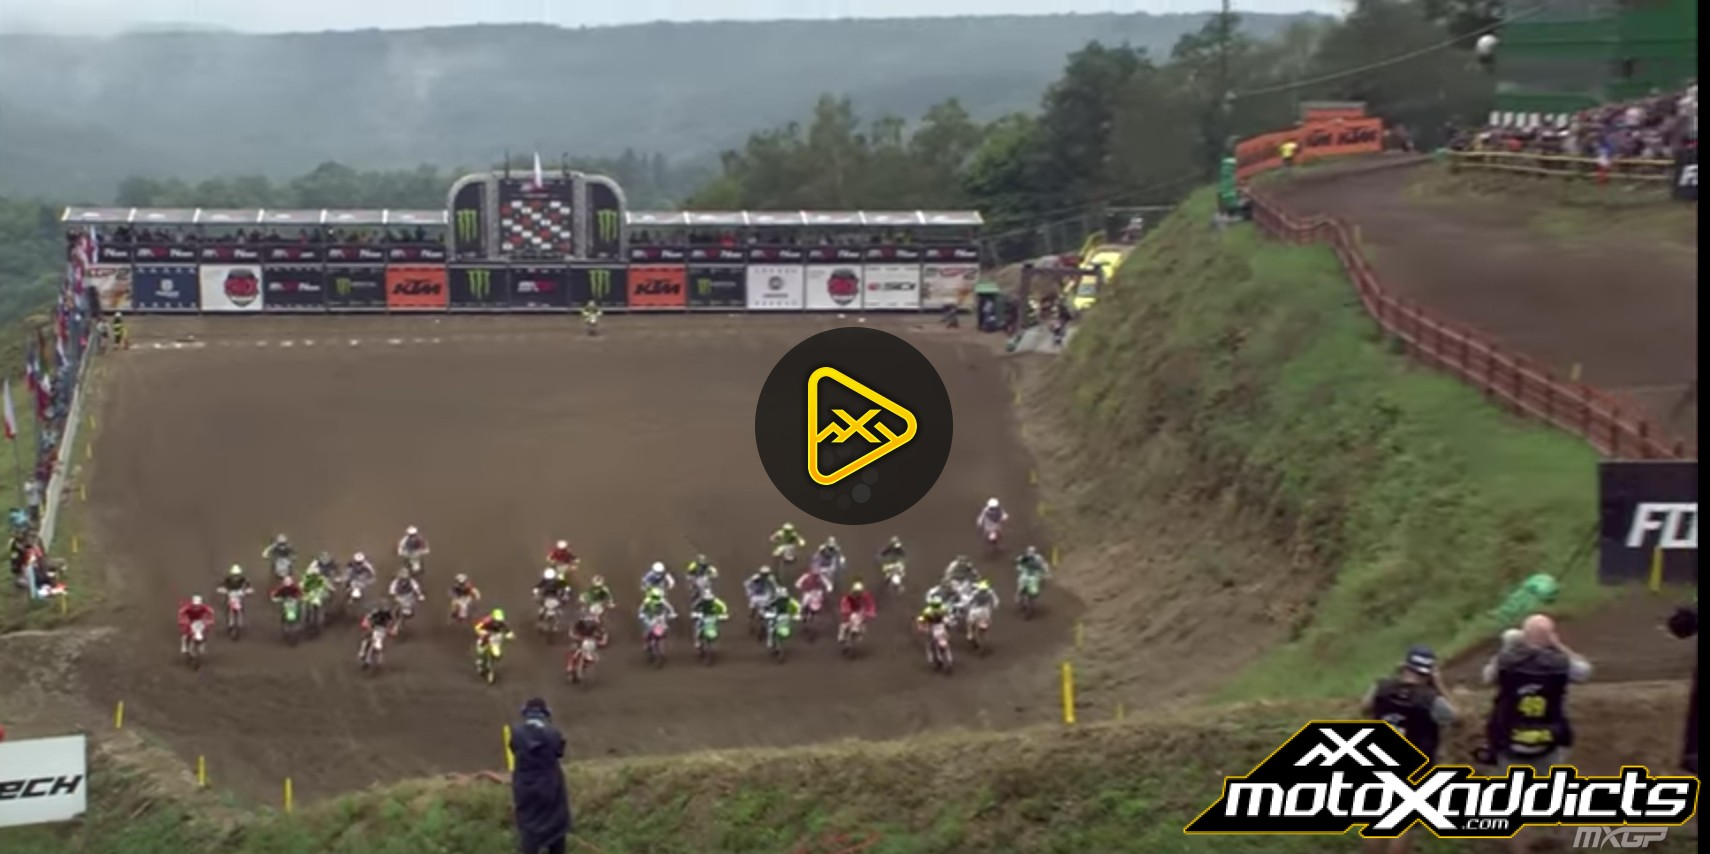 MXGP Qualifying Highlights – 2016 MXGP of Czech republic